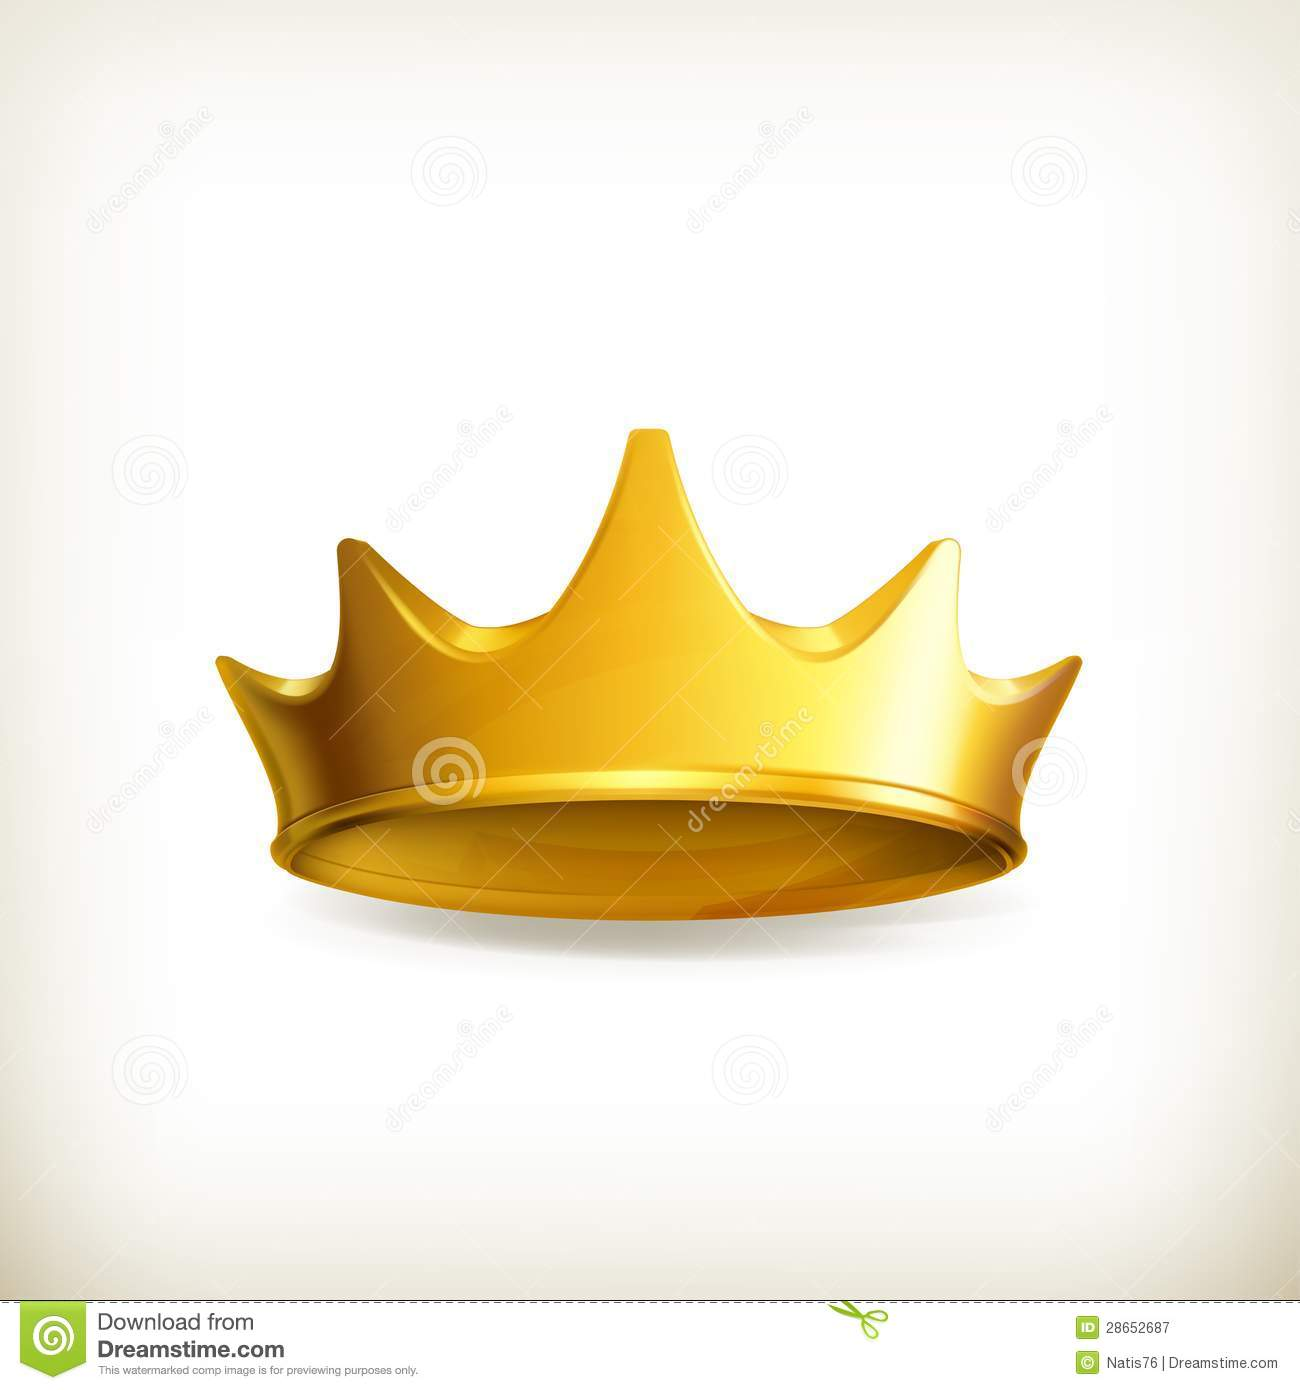 Golden Crown Royalty Free Stock Photography - Image: 28652687